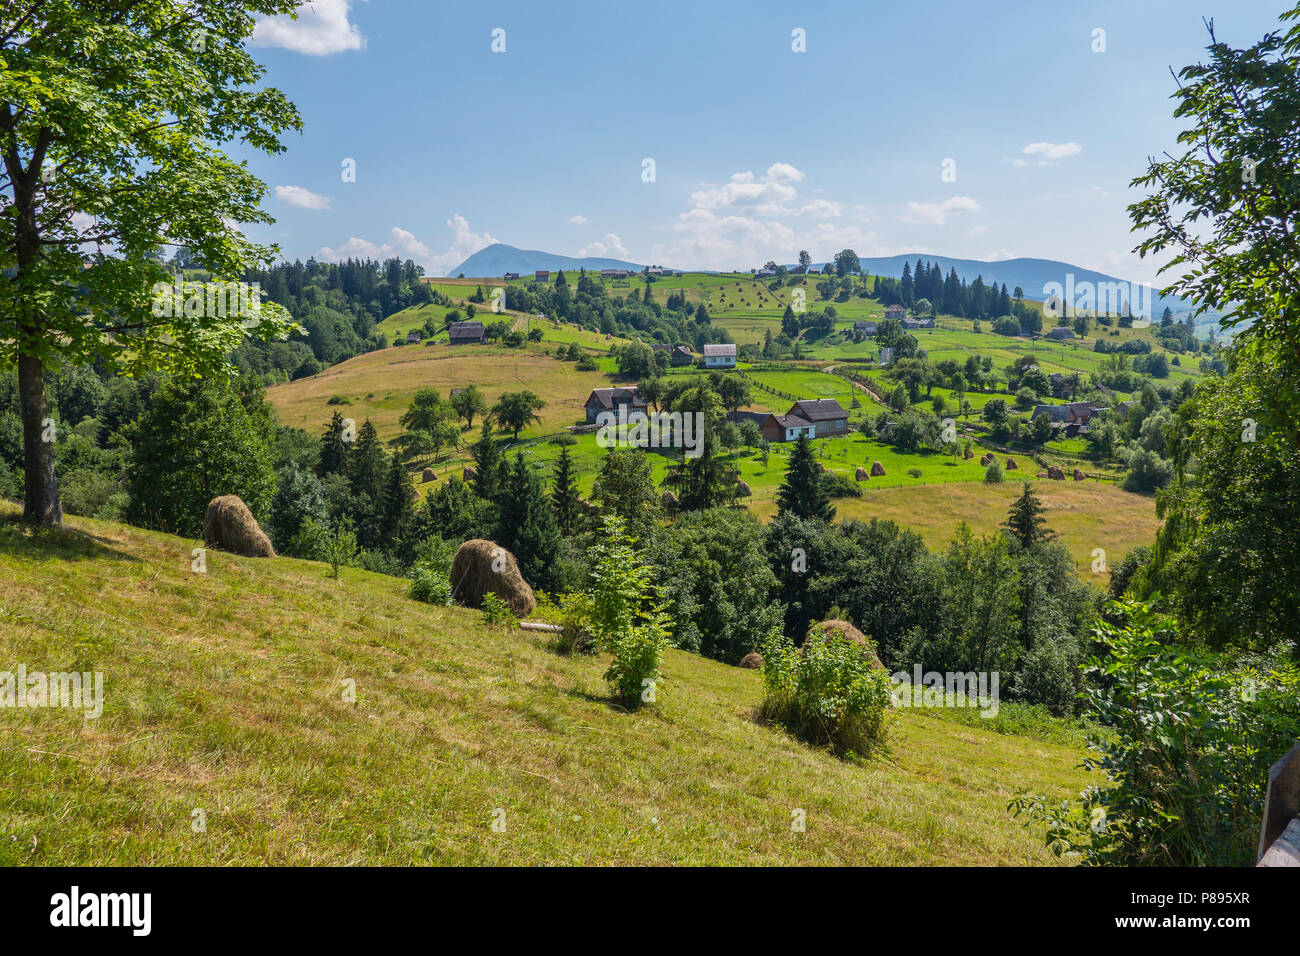 A sultry blue sky with rare clouds hung over a small village with beautiful mountain scenery around. . For your design - Stock Image